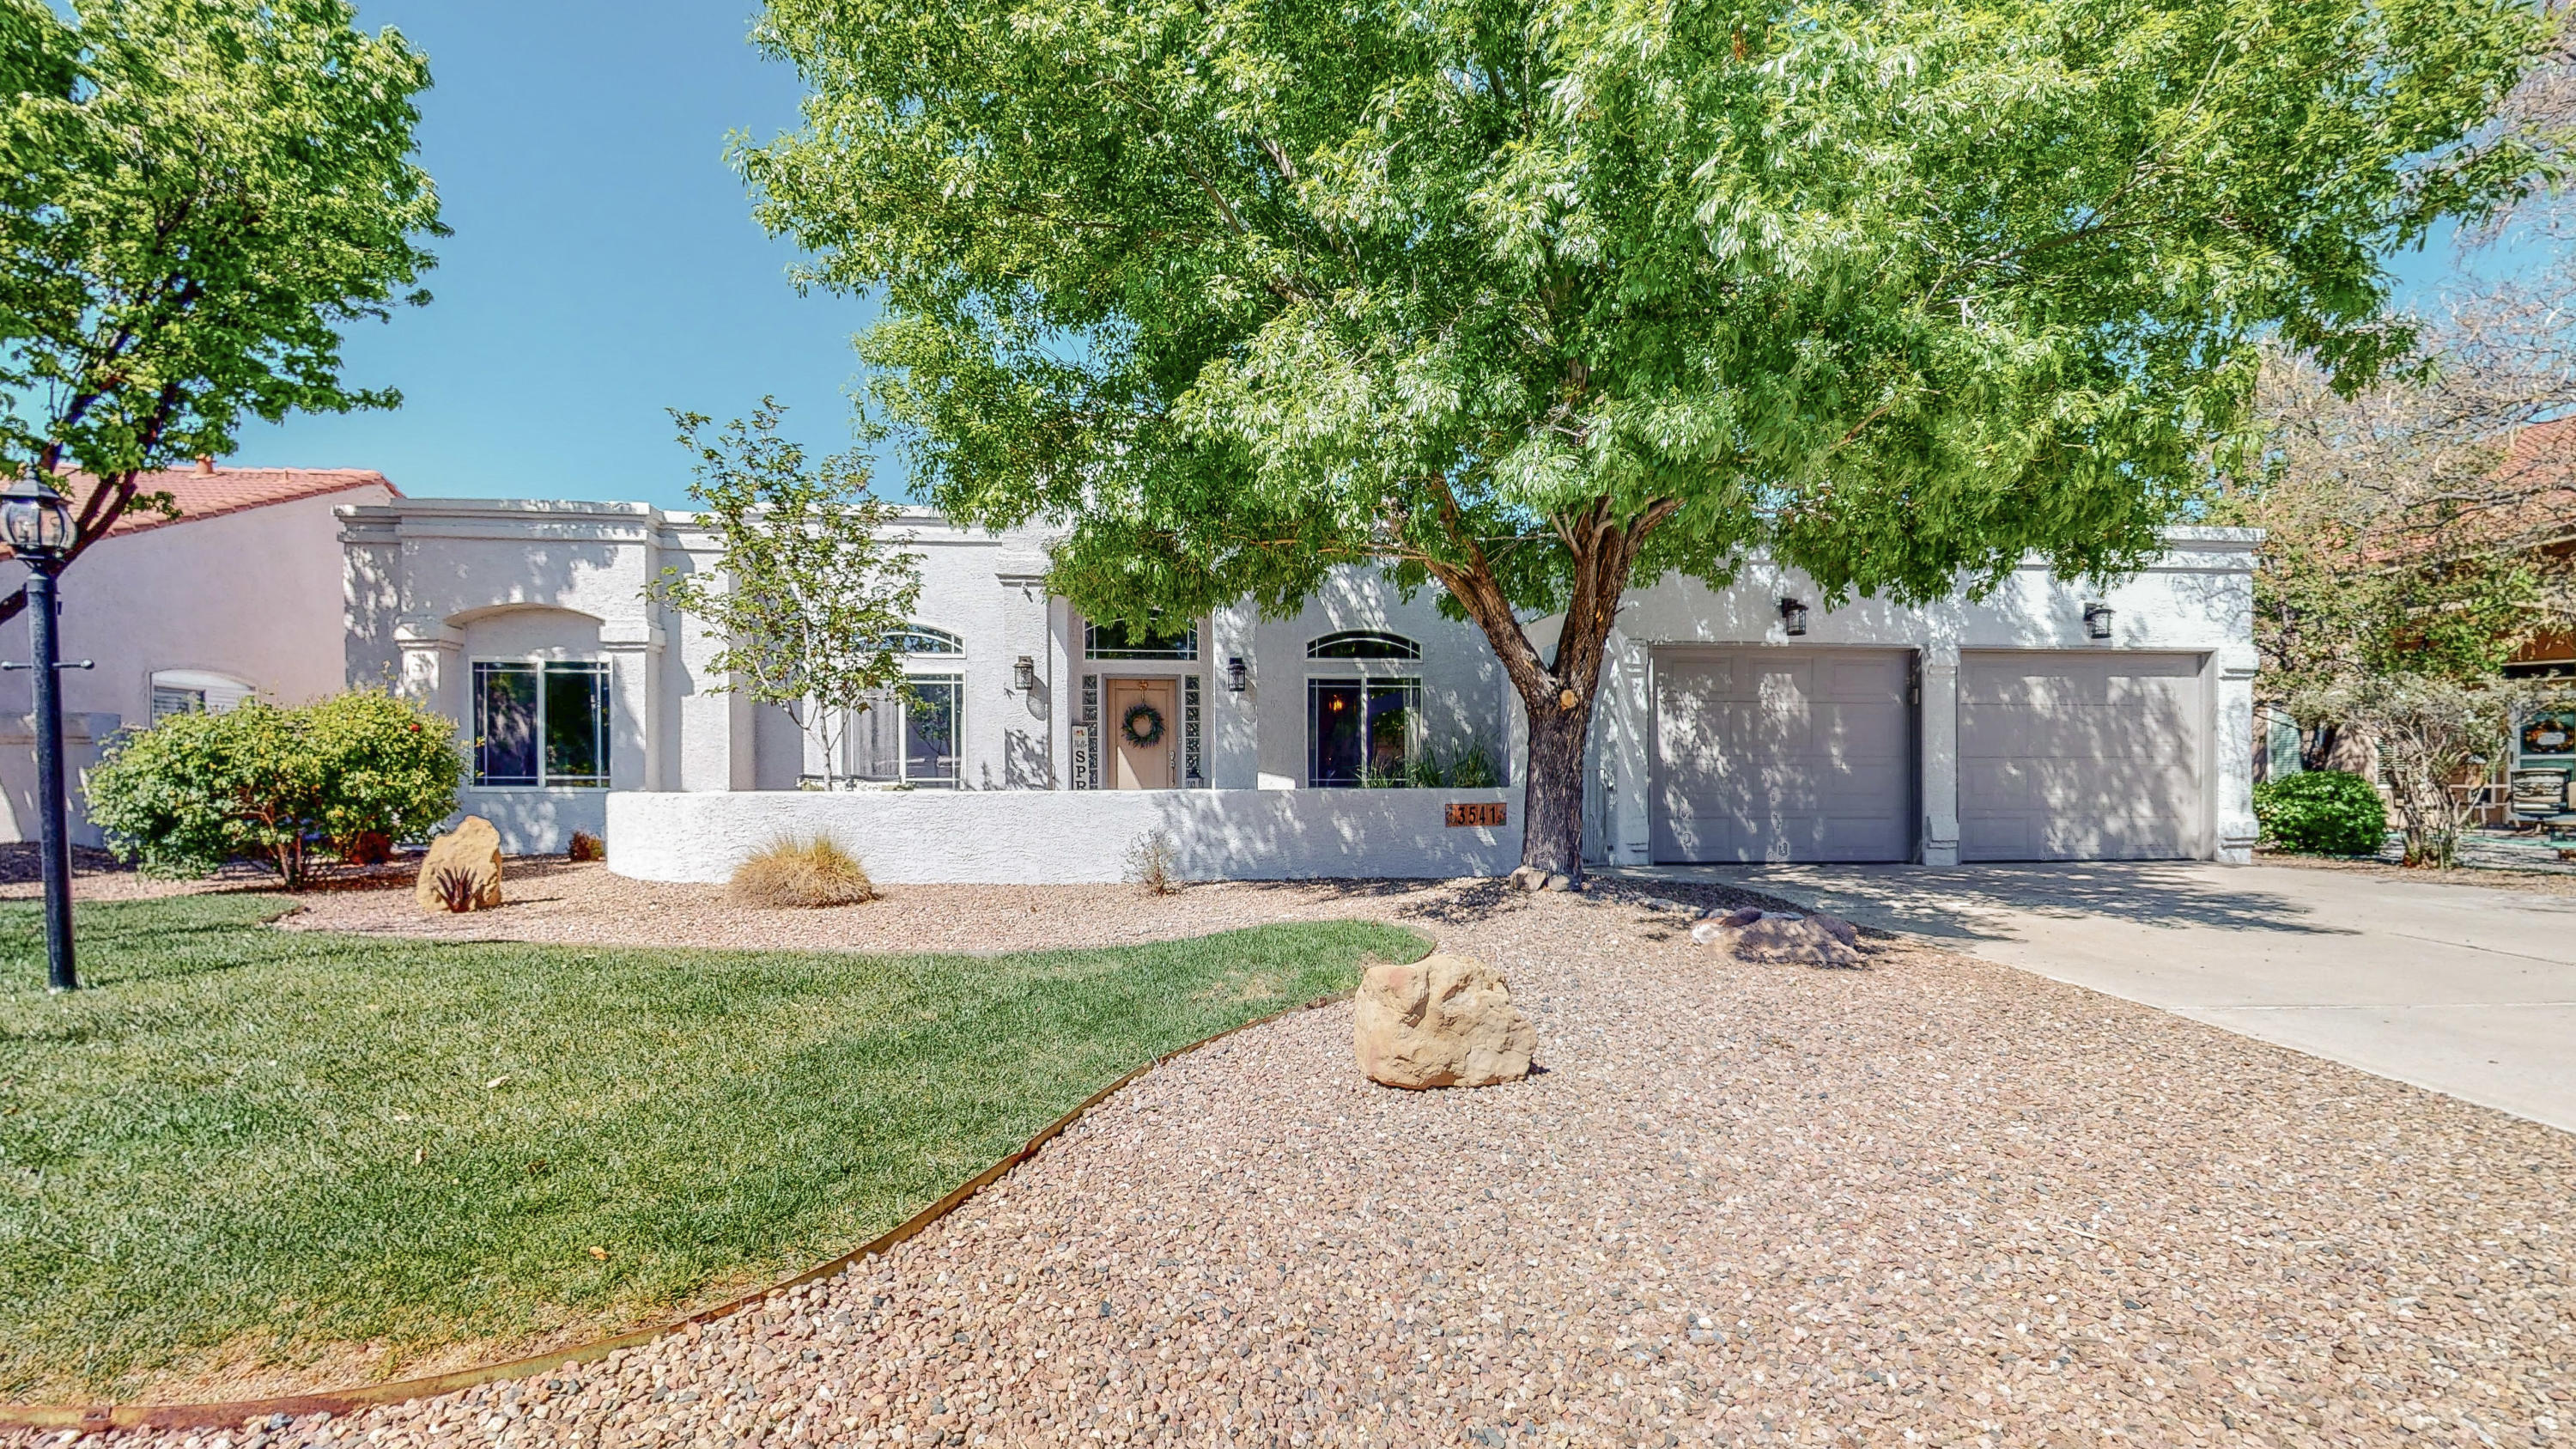 AHHHMAZING Completely Renovated Home Through Out. Located In Top Desirable Area With First Class Amenities! Tongue & Groove Ceiling With Beams And Corbels. Bright Open Gourmet Kitchen With Granite Counter Tops, Stainless Steel Appliances & Custom Cabinets. Beautiful Master Suite With Patio Access. Quartz Counter Tops In Bathrooms & Designer Tile.  Mini Master With En Suite. Gorgeous Bamboo Wood Flooring. Wood Look Ceramic Tile.  Venetian Plaster Kiva Gas Fireplace. Huge Storage Area In Garage With Cedar That Makes The Perfect Handy Man Workshop. Lavish Lush Front & Backyard Landscaping With Beautiful Mature Trees, Foliage & Raised Planters. Over Sized Lot On Most Sought After Street In Rio Rancho.  This House WILL IMPRESS & Is A MUST SEE!!